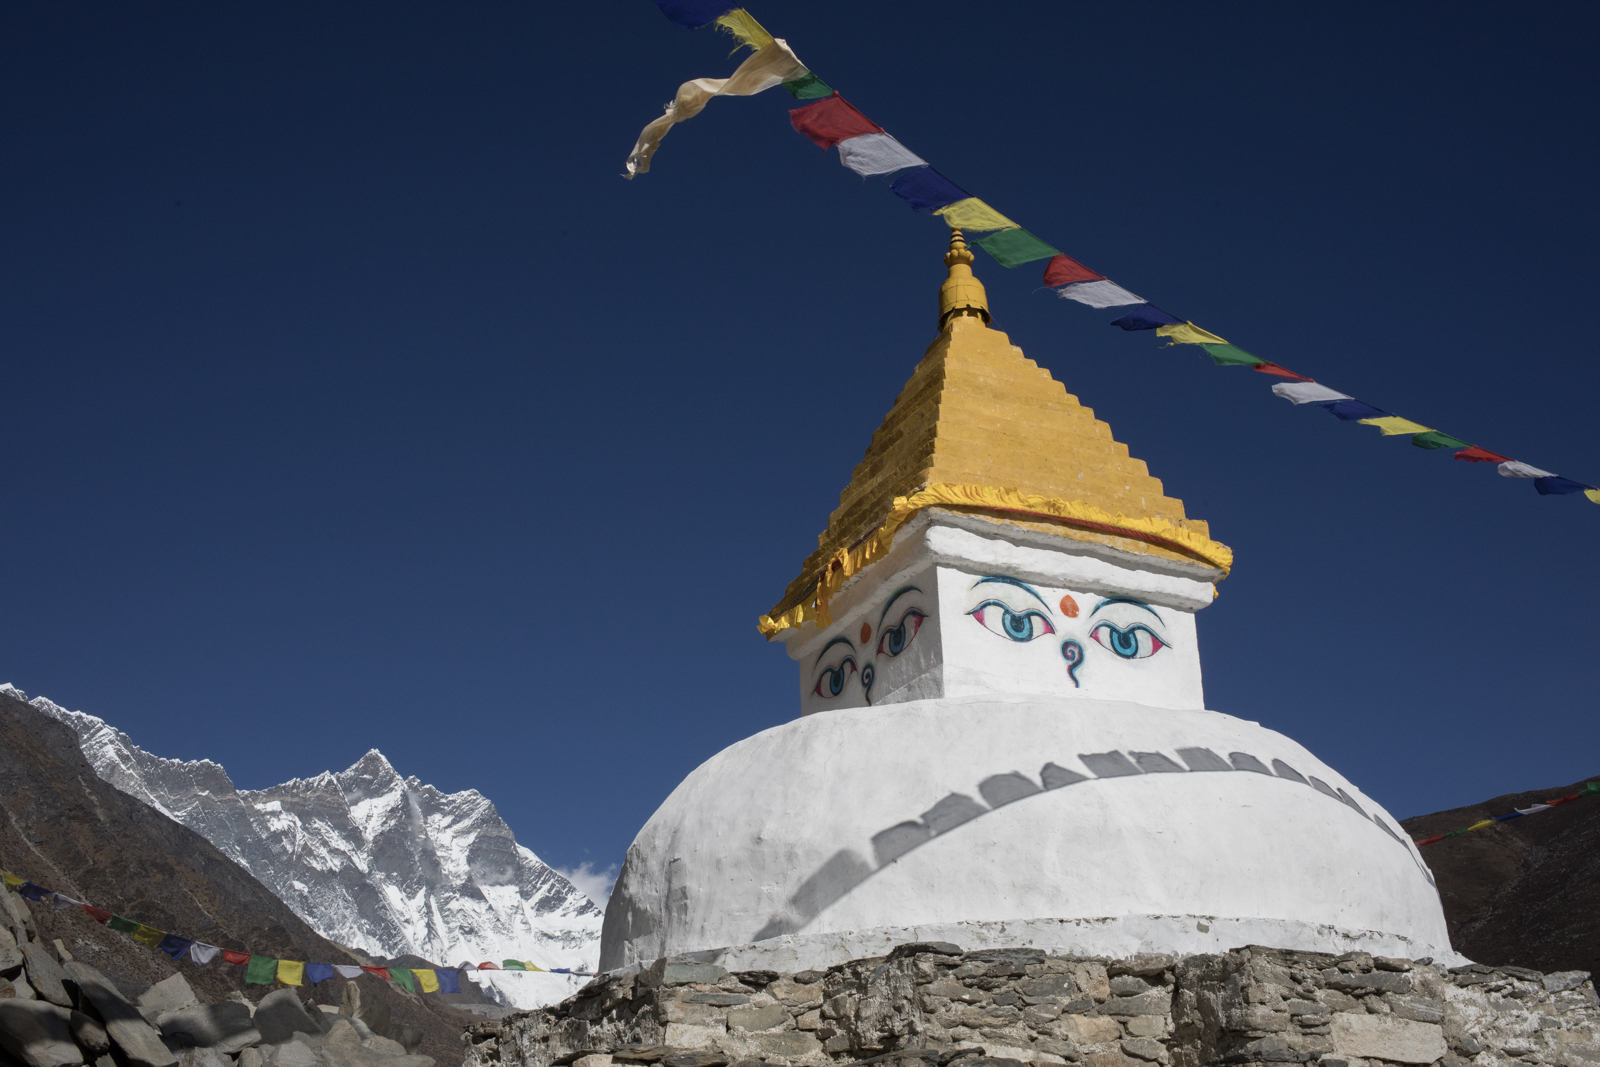 Stupa in Dingboche. The eyes of Buddha are painted in the four directions.  The eyes are all seeing and wise.